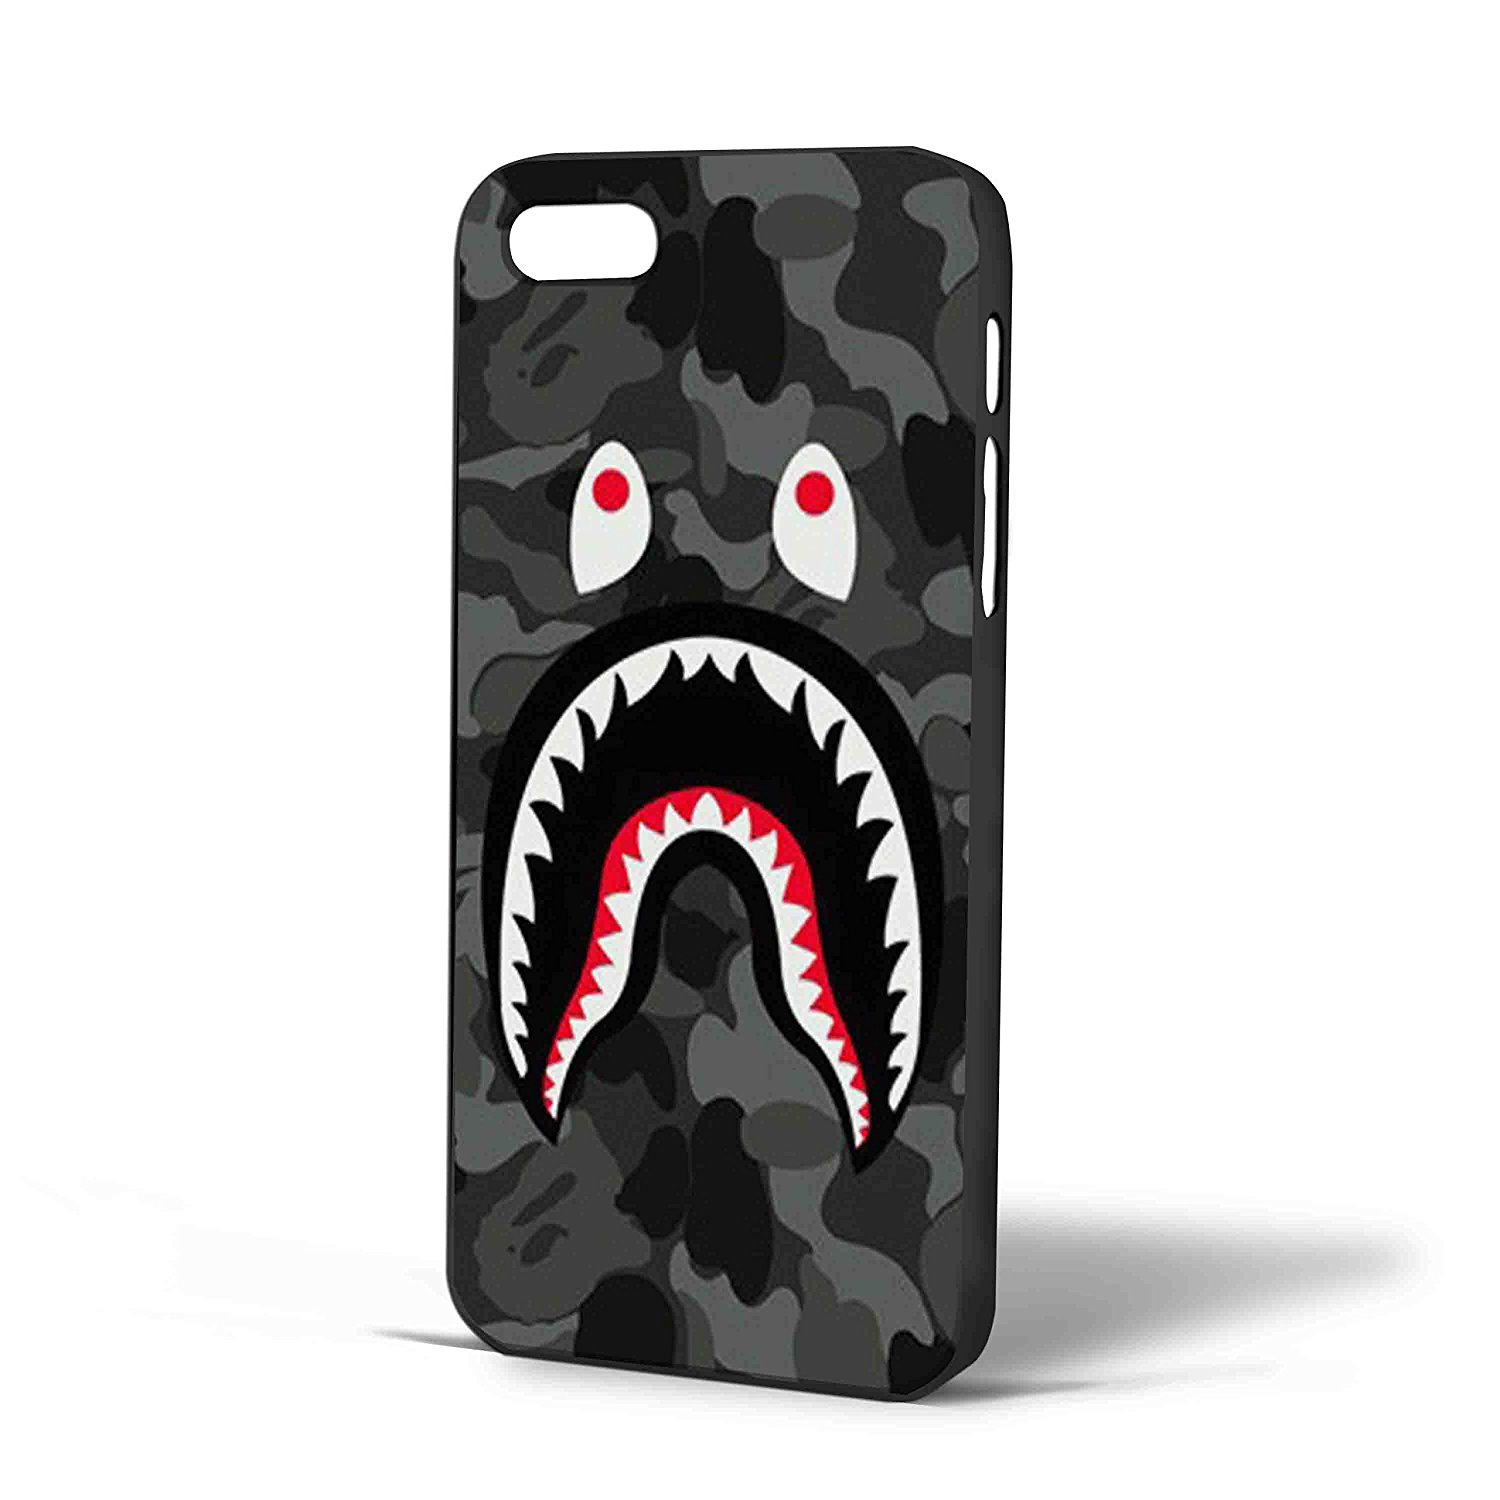 wholesale dealer 489b5 0901b Ganma Bape Shark Black Army Pattern Case For iPhone Case (Case For iPhone 6  plus Black)